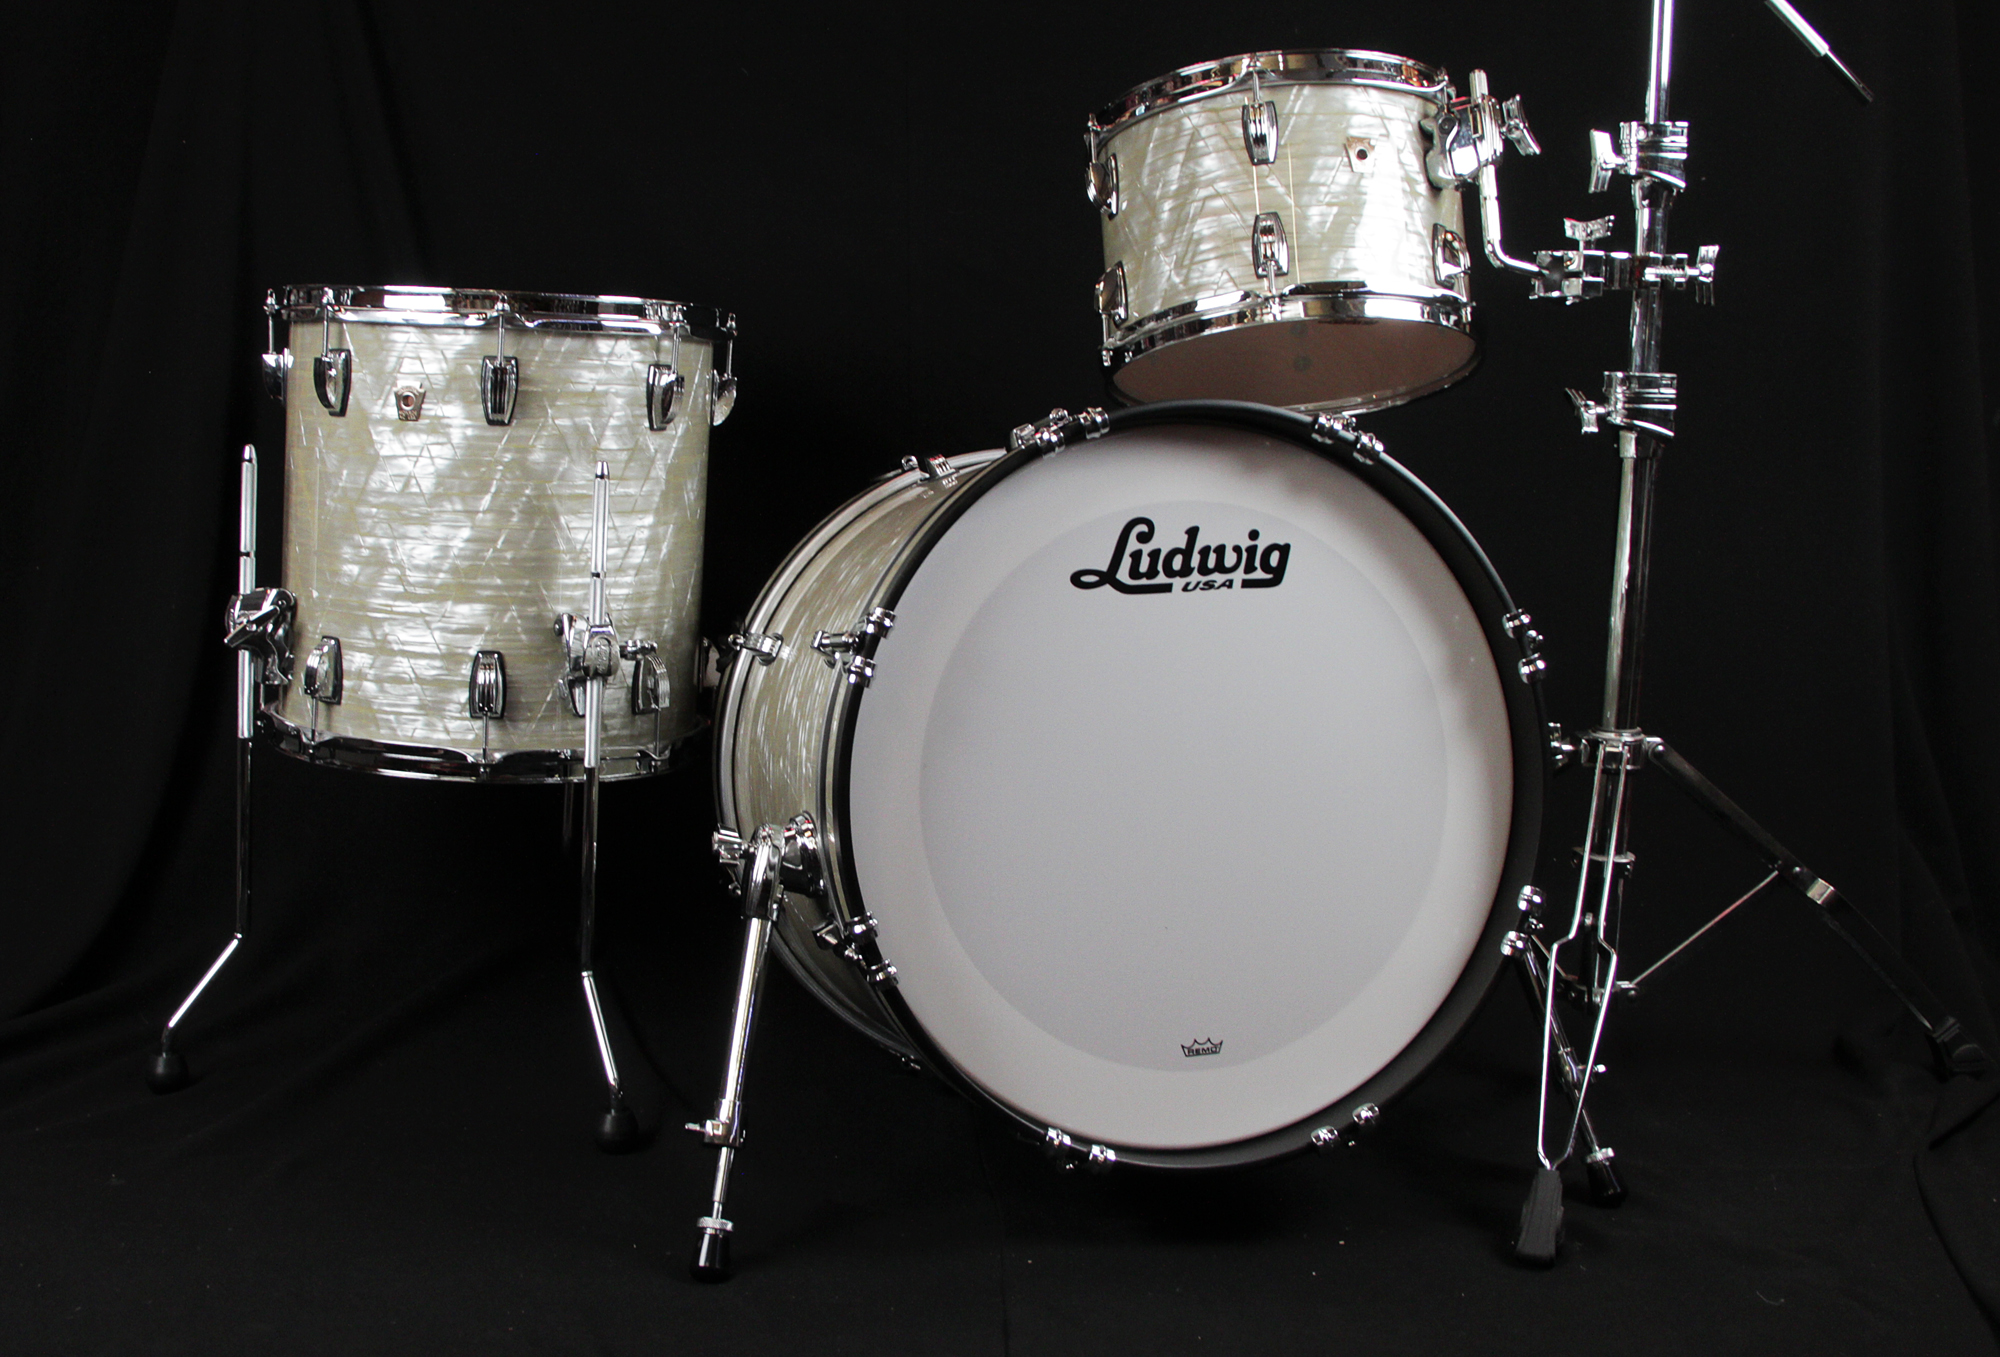 acoustic drum kits ludwig usa classic maple 20 39 39 downbeat drum kit classic olive pearl. Black Bedroom Furniture Sets. Home Design Ideas